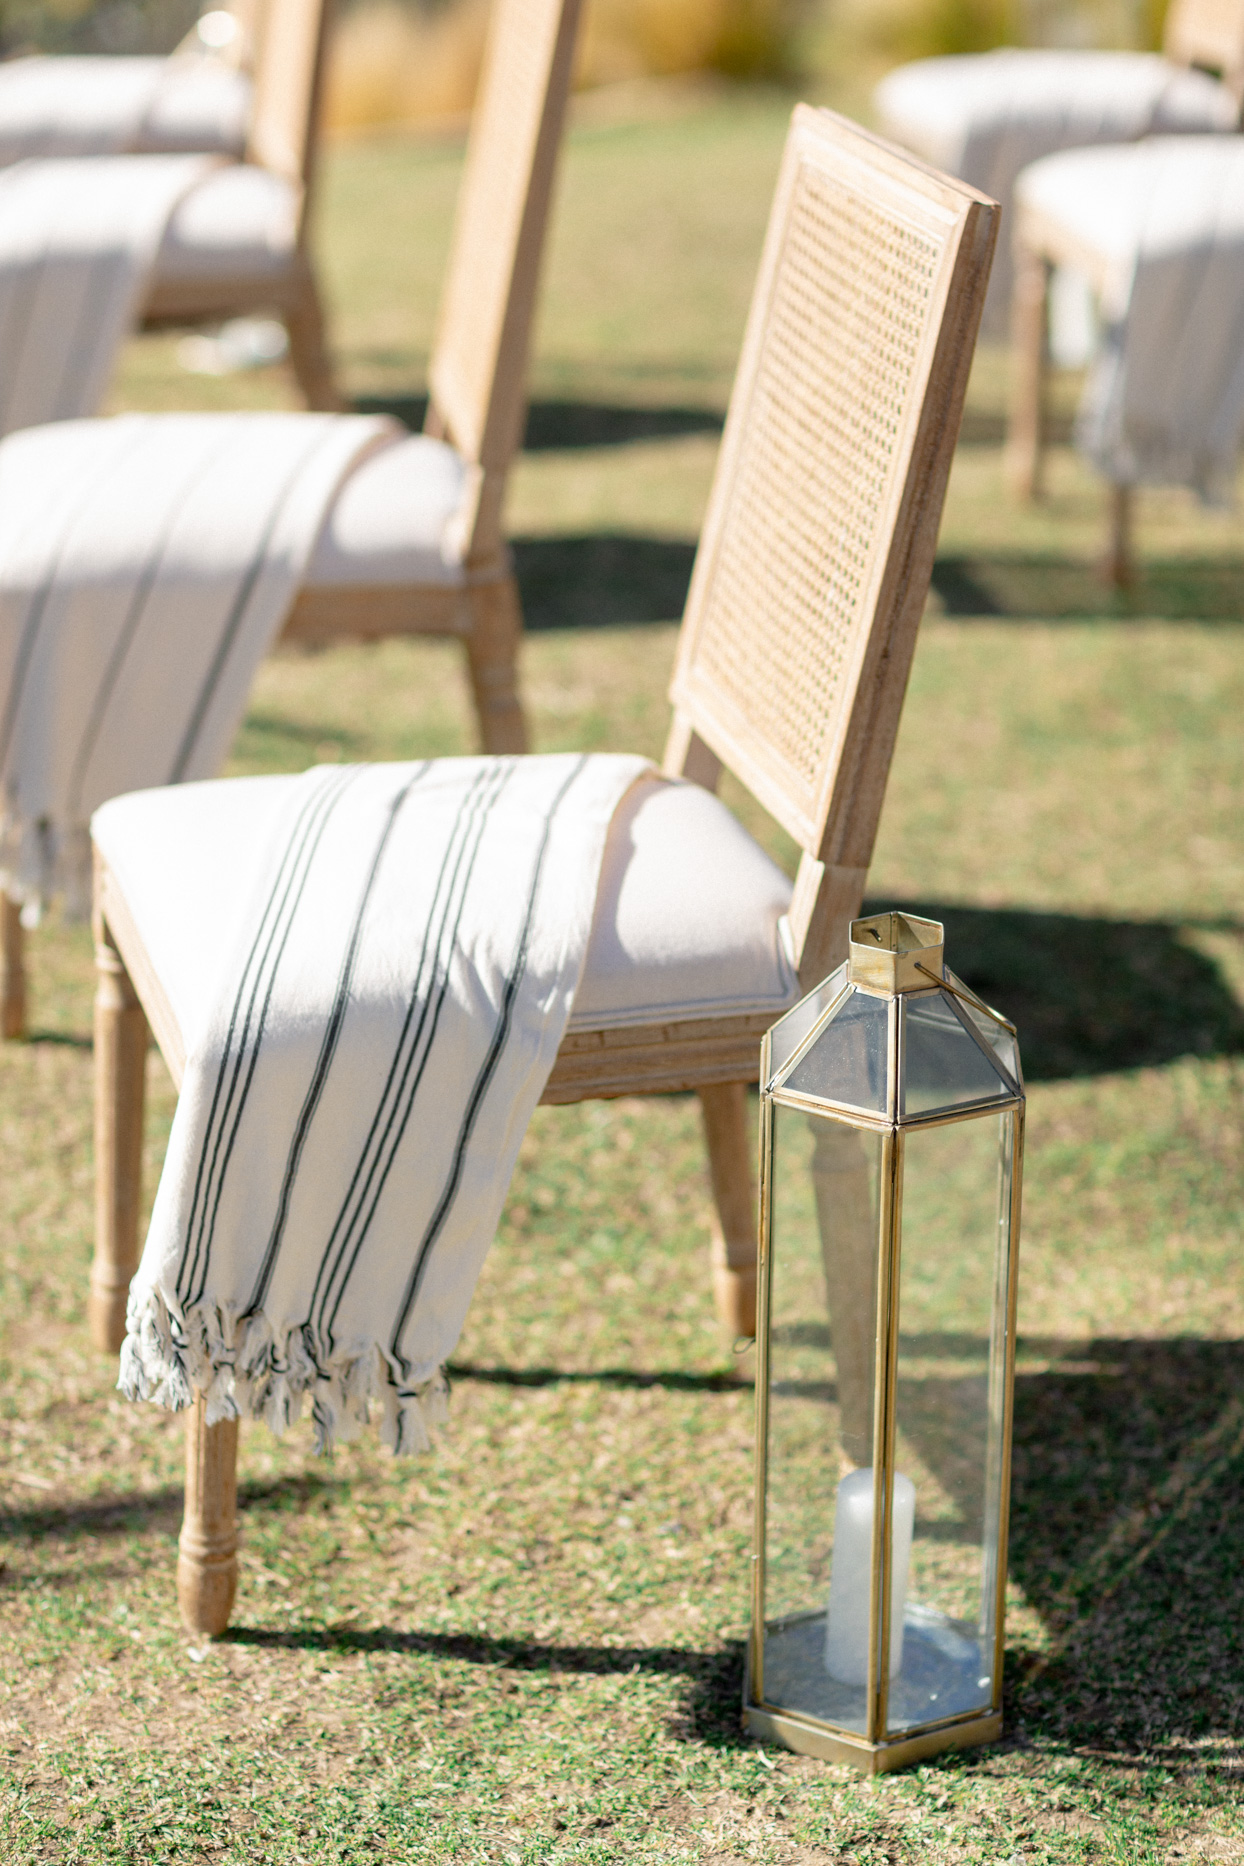 wedding seats with throw blankets outside